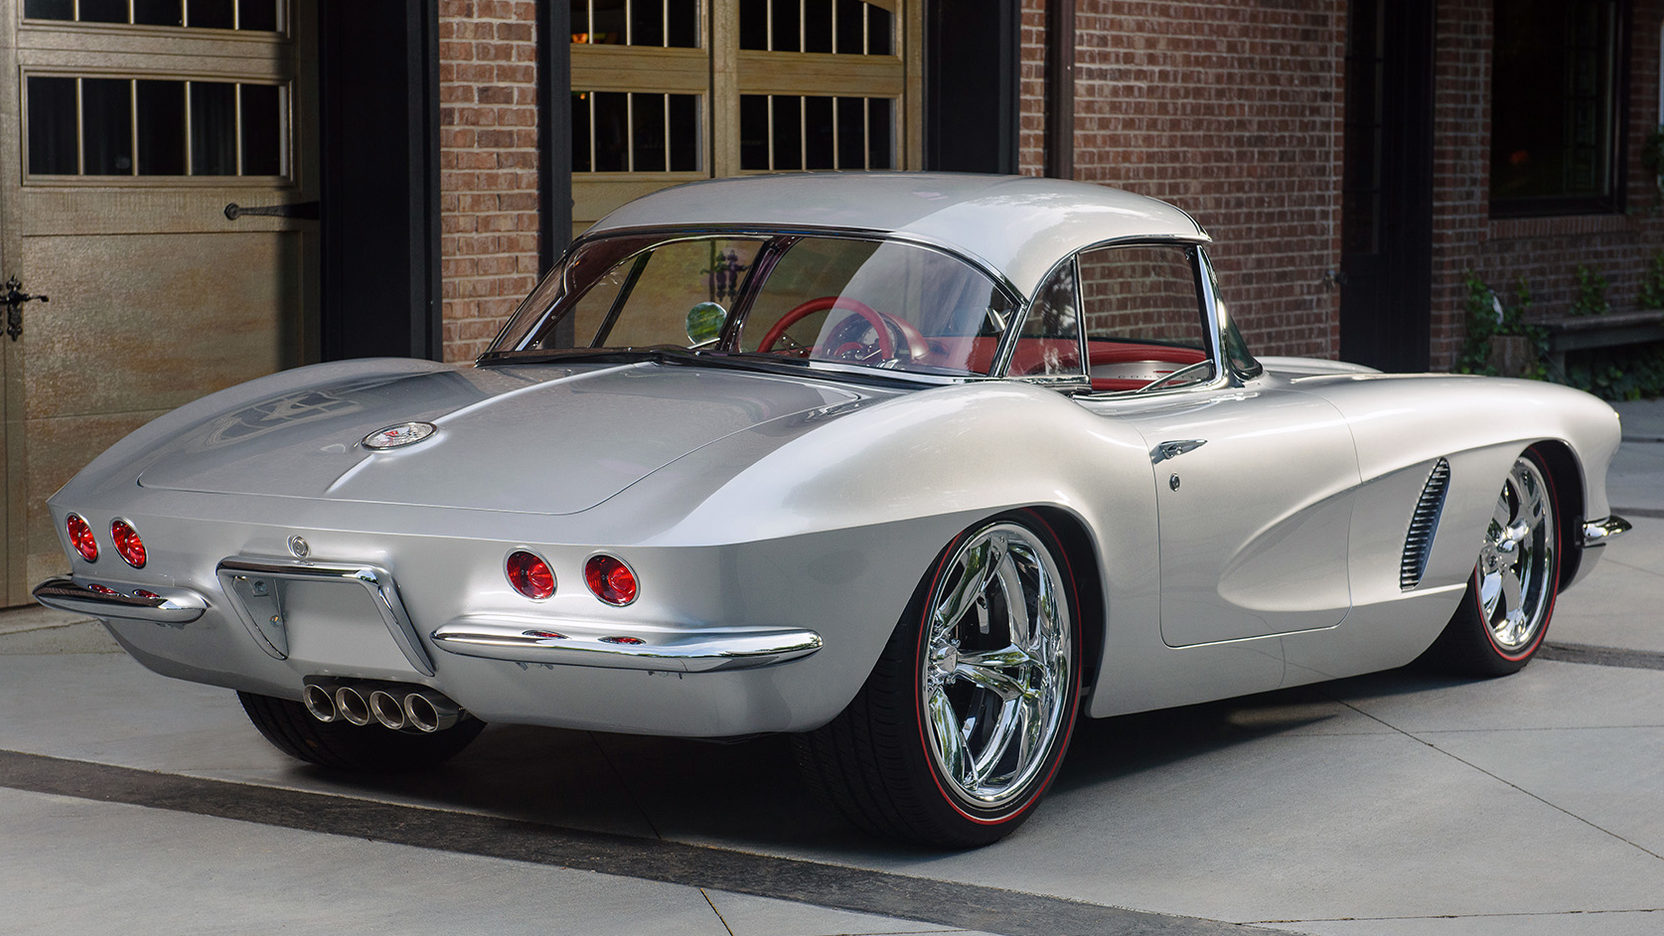 Red Line Tires >> Jaw Dropper of the Week: 1962 Chevrolet Corvette LS3/500